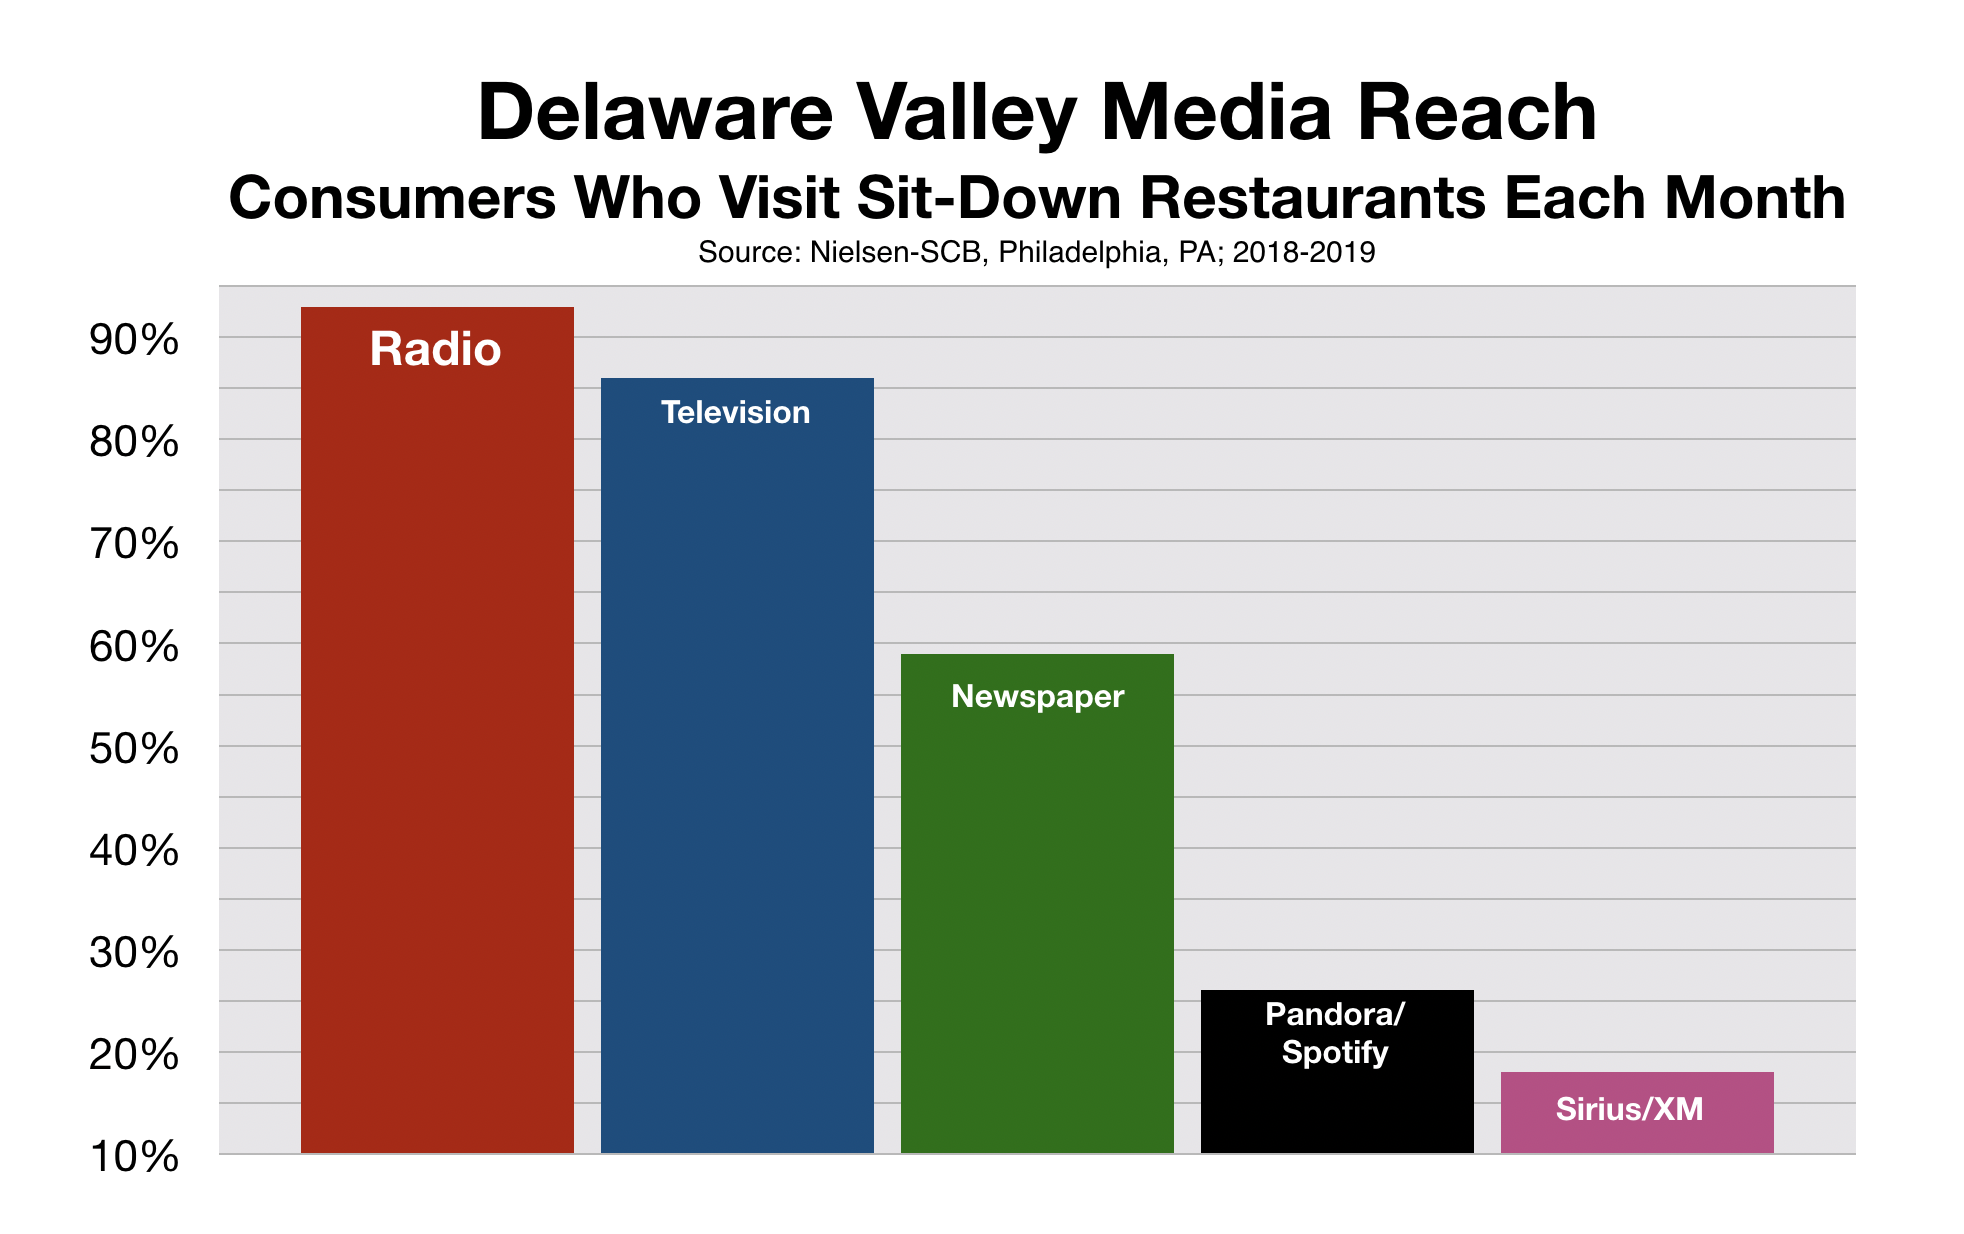 Restaurant Advertising in Delaware Valley